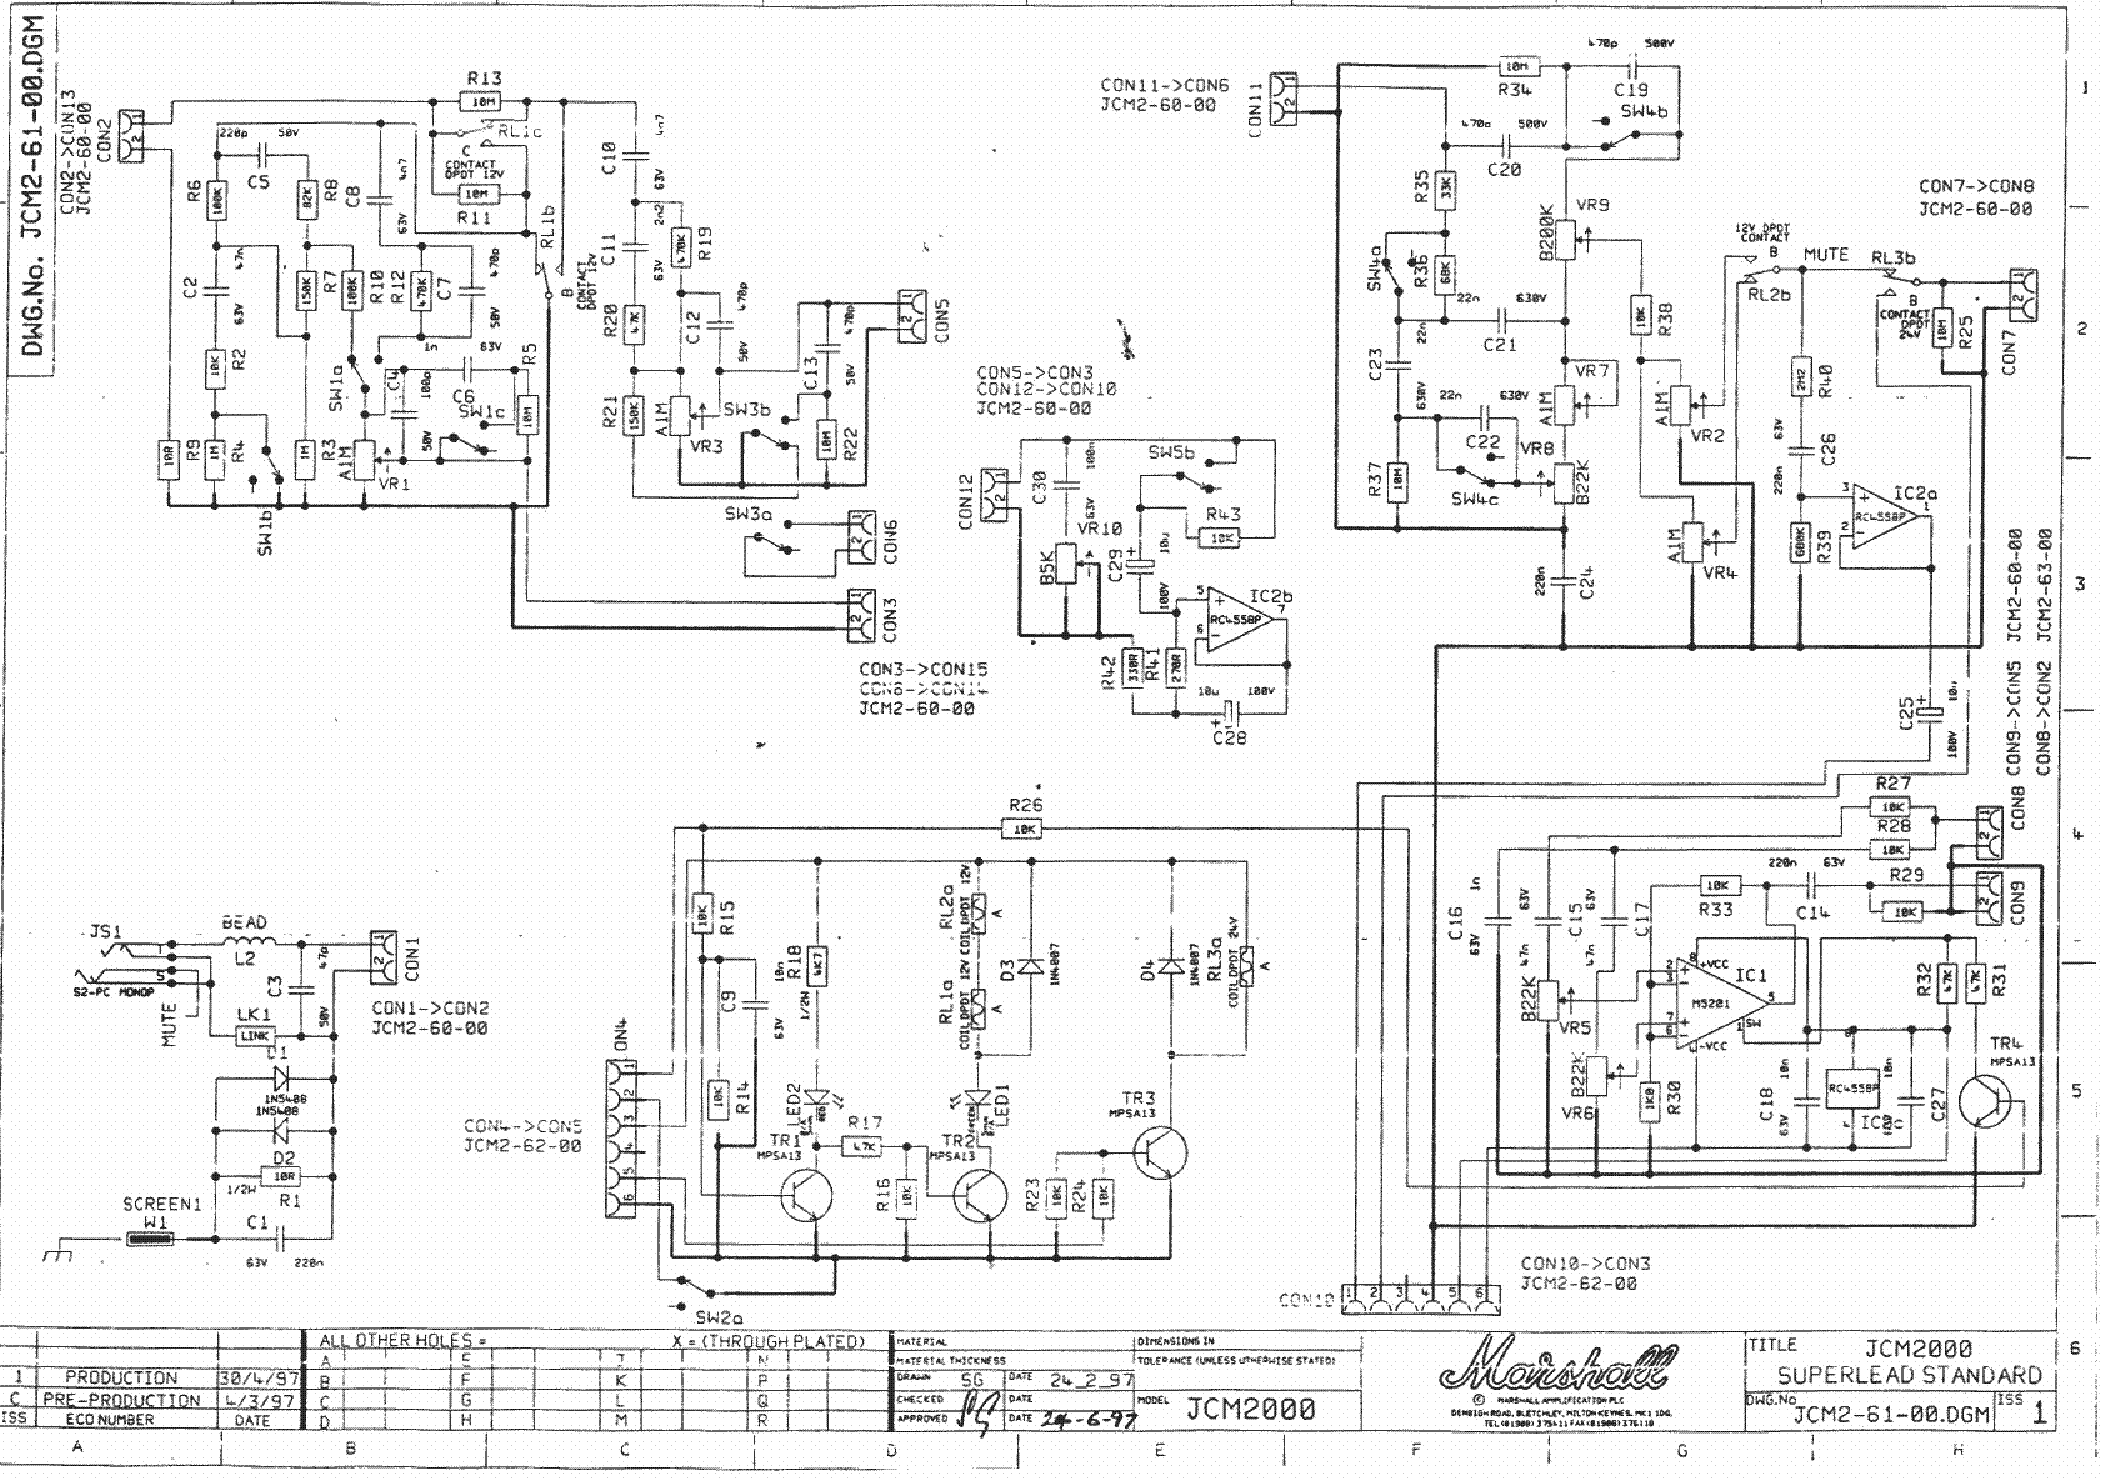 Carvin X100b Schematic Wiring Diagram Master Blogs Fender Guitar Amp Schematics Free Download Simple Diagrams Rh 48 Studio011 De Combo X100